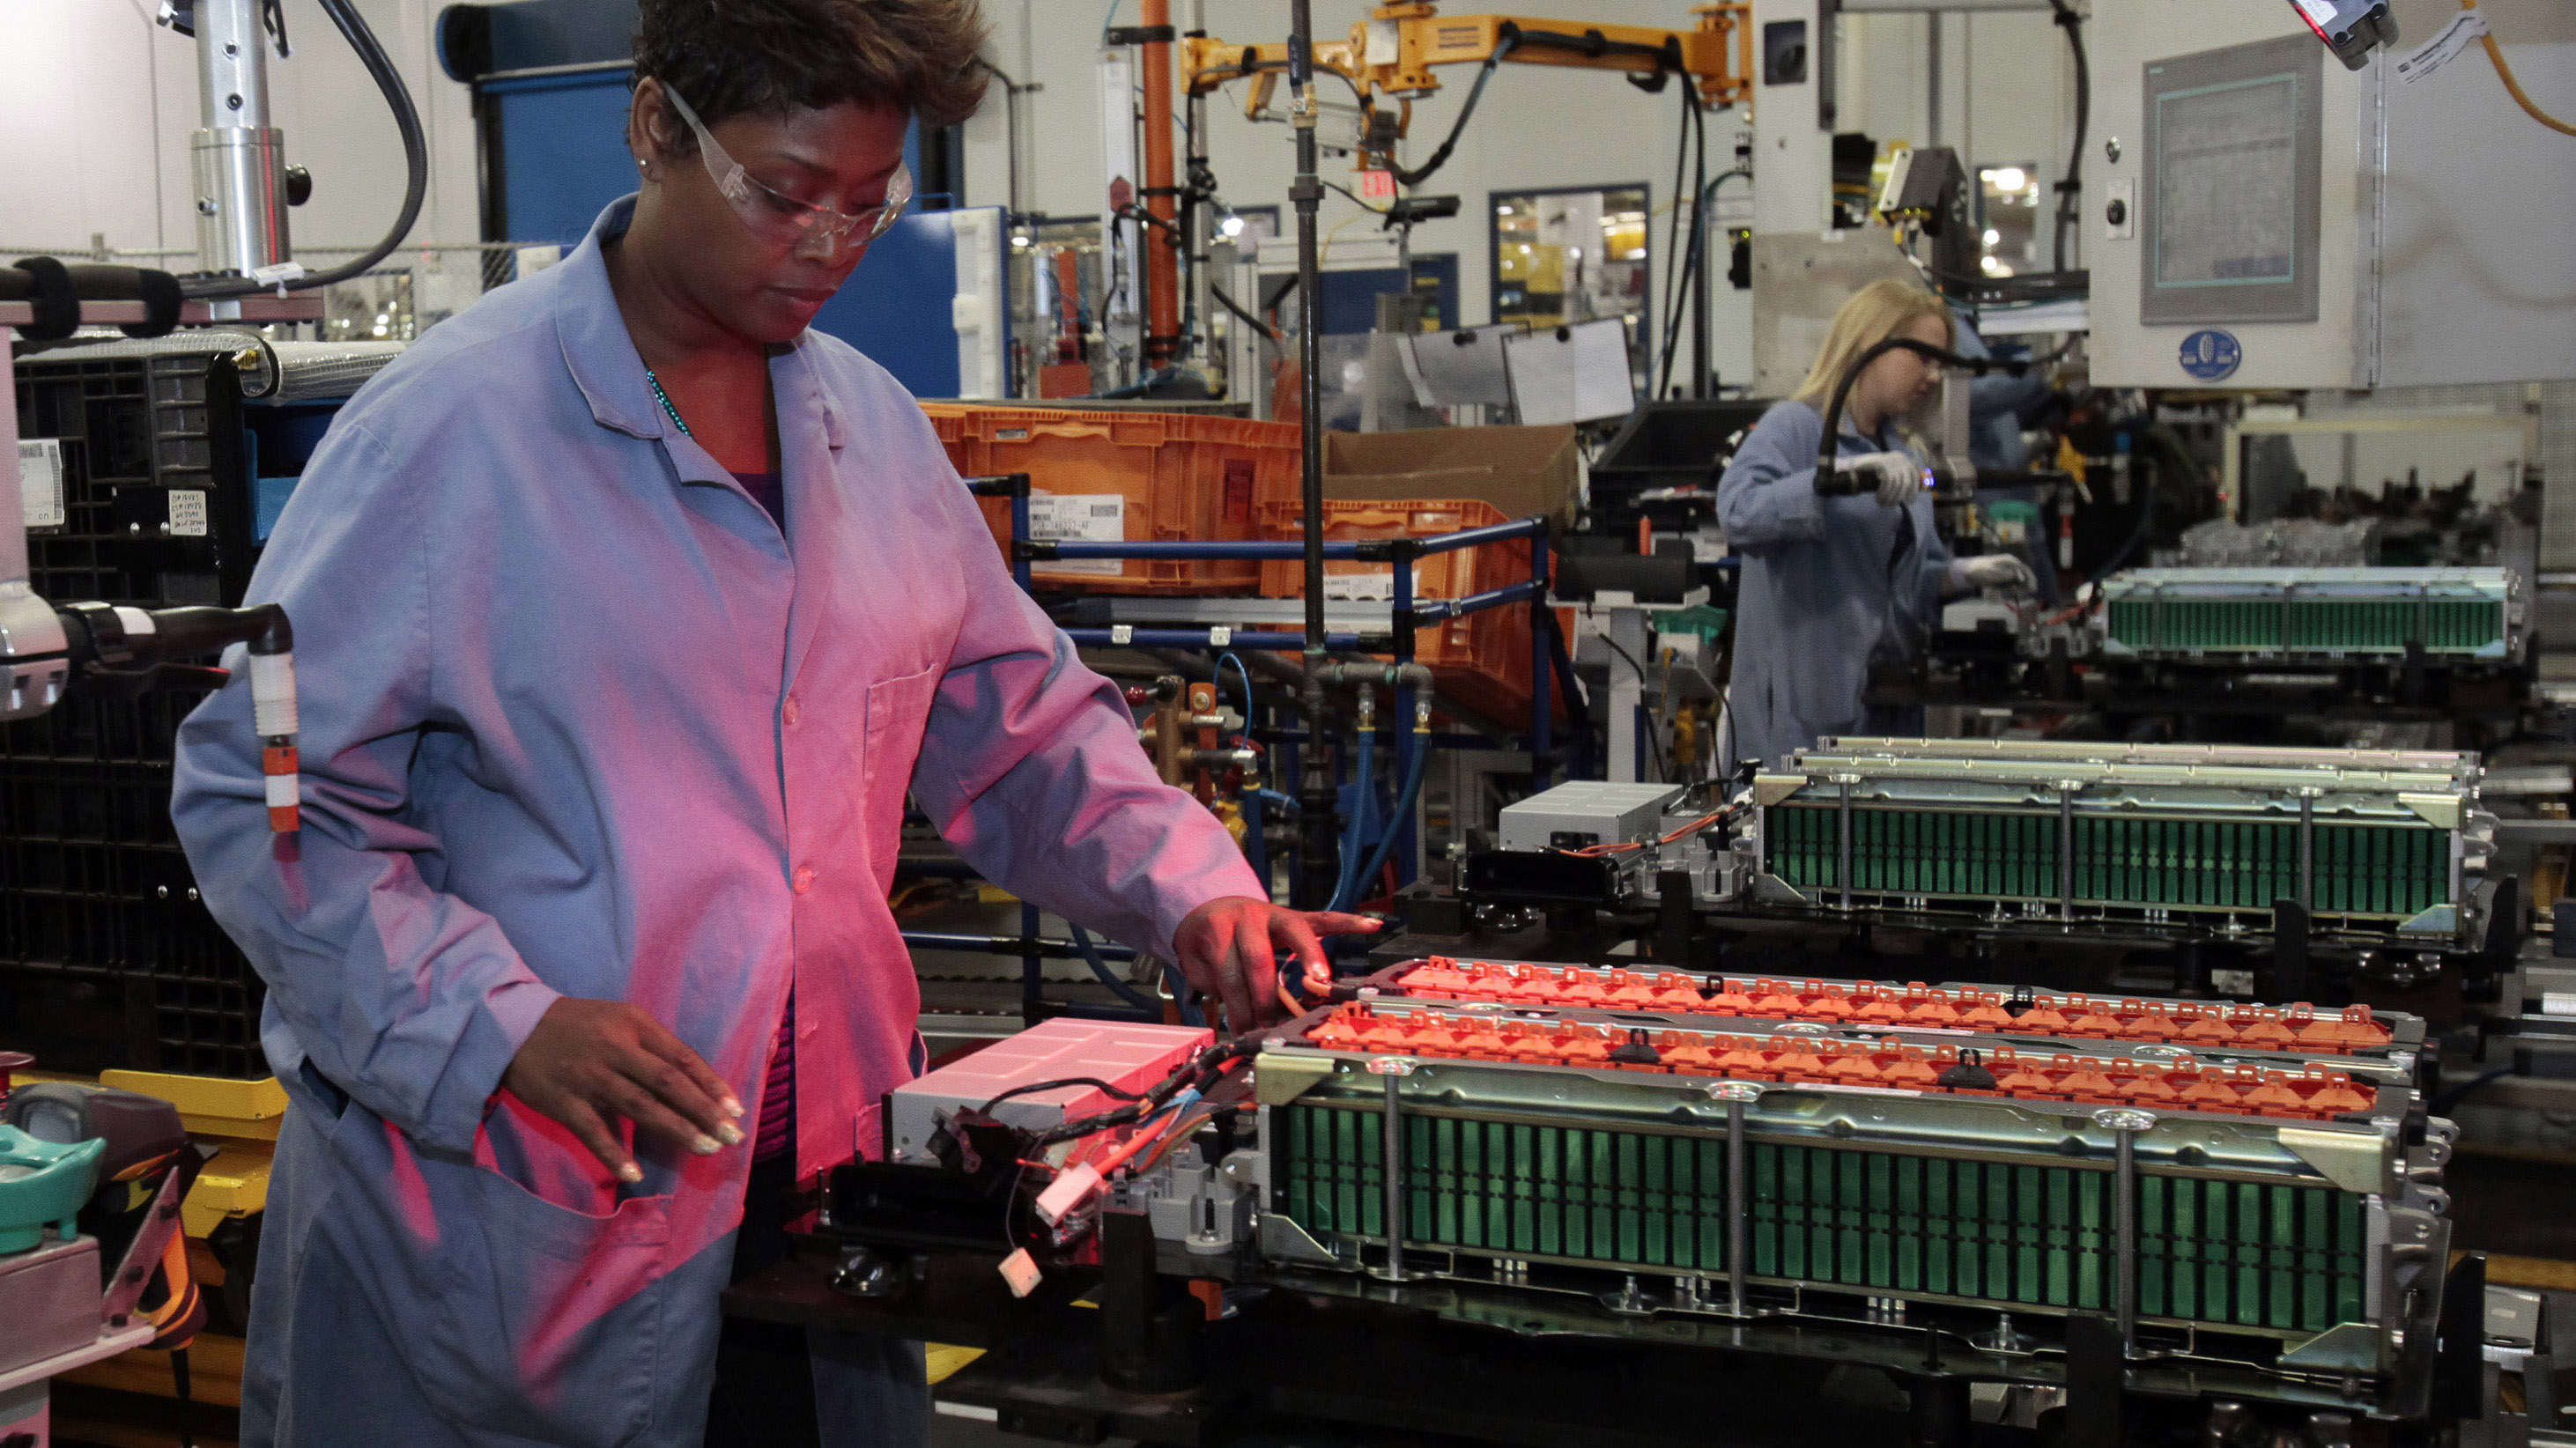 Ford Motor production worker Andrea Brooks assembles batteries for Ford electric and hybrid vehicles at the Ford Rawsonville Assembly Plant in Ypsilanti Twsp, Michigan November 7, 2012. Ford Motor Co  marked on Thursday the production launch of its latest plug-in hybrid at a former SUV factory that now serves as a model for the second-largest U.S. automaker's global manufacturing strategy. REUTERS/Rebecca Cook  (UNITED STATES - Tags: TRANSPORT BUSINESS) - GM1E8B8119U01